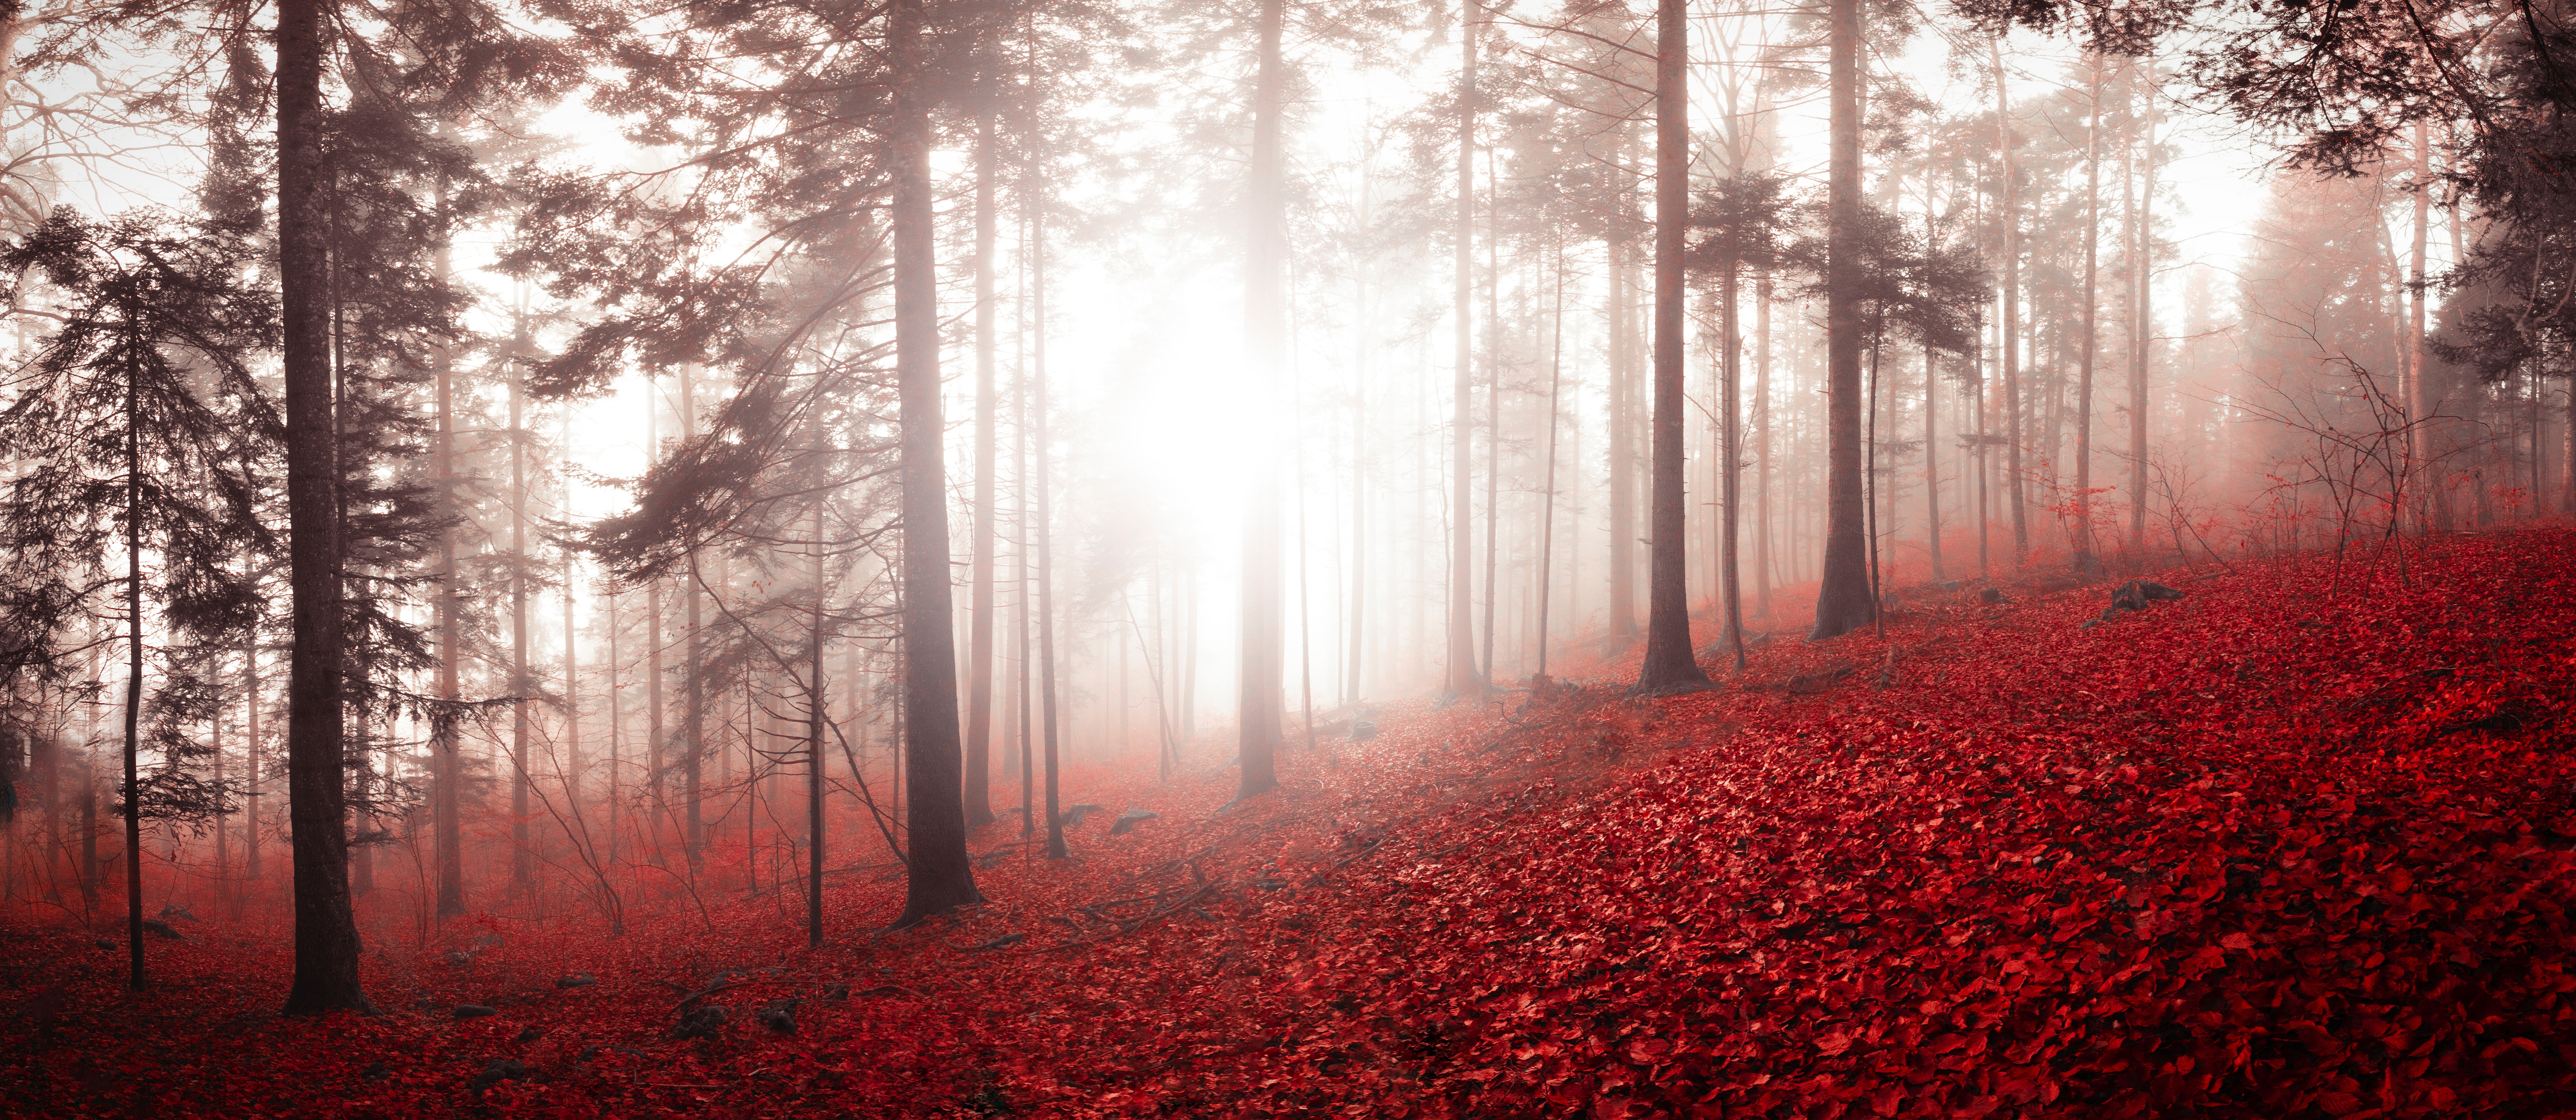 66544 download wallpaper Nature, Trees, Autumn, Forest, Fog, Foliage, Switzerland screensavers and pictures for free